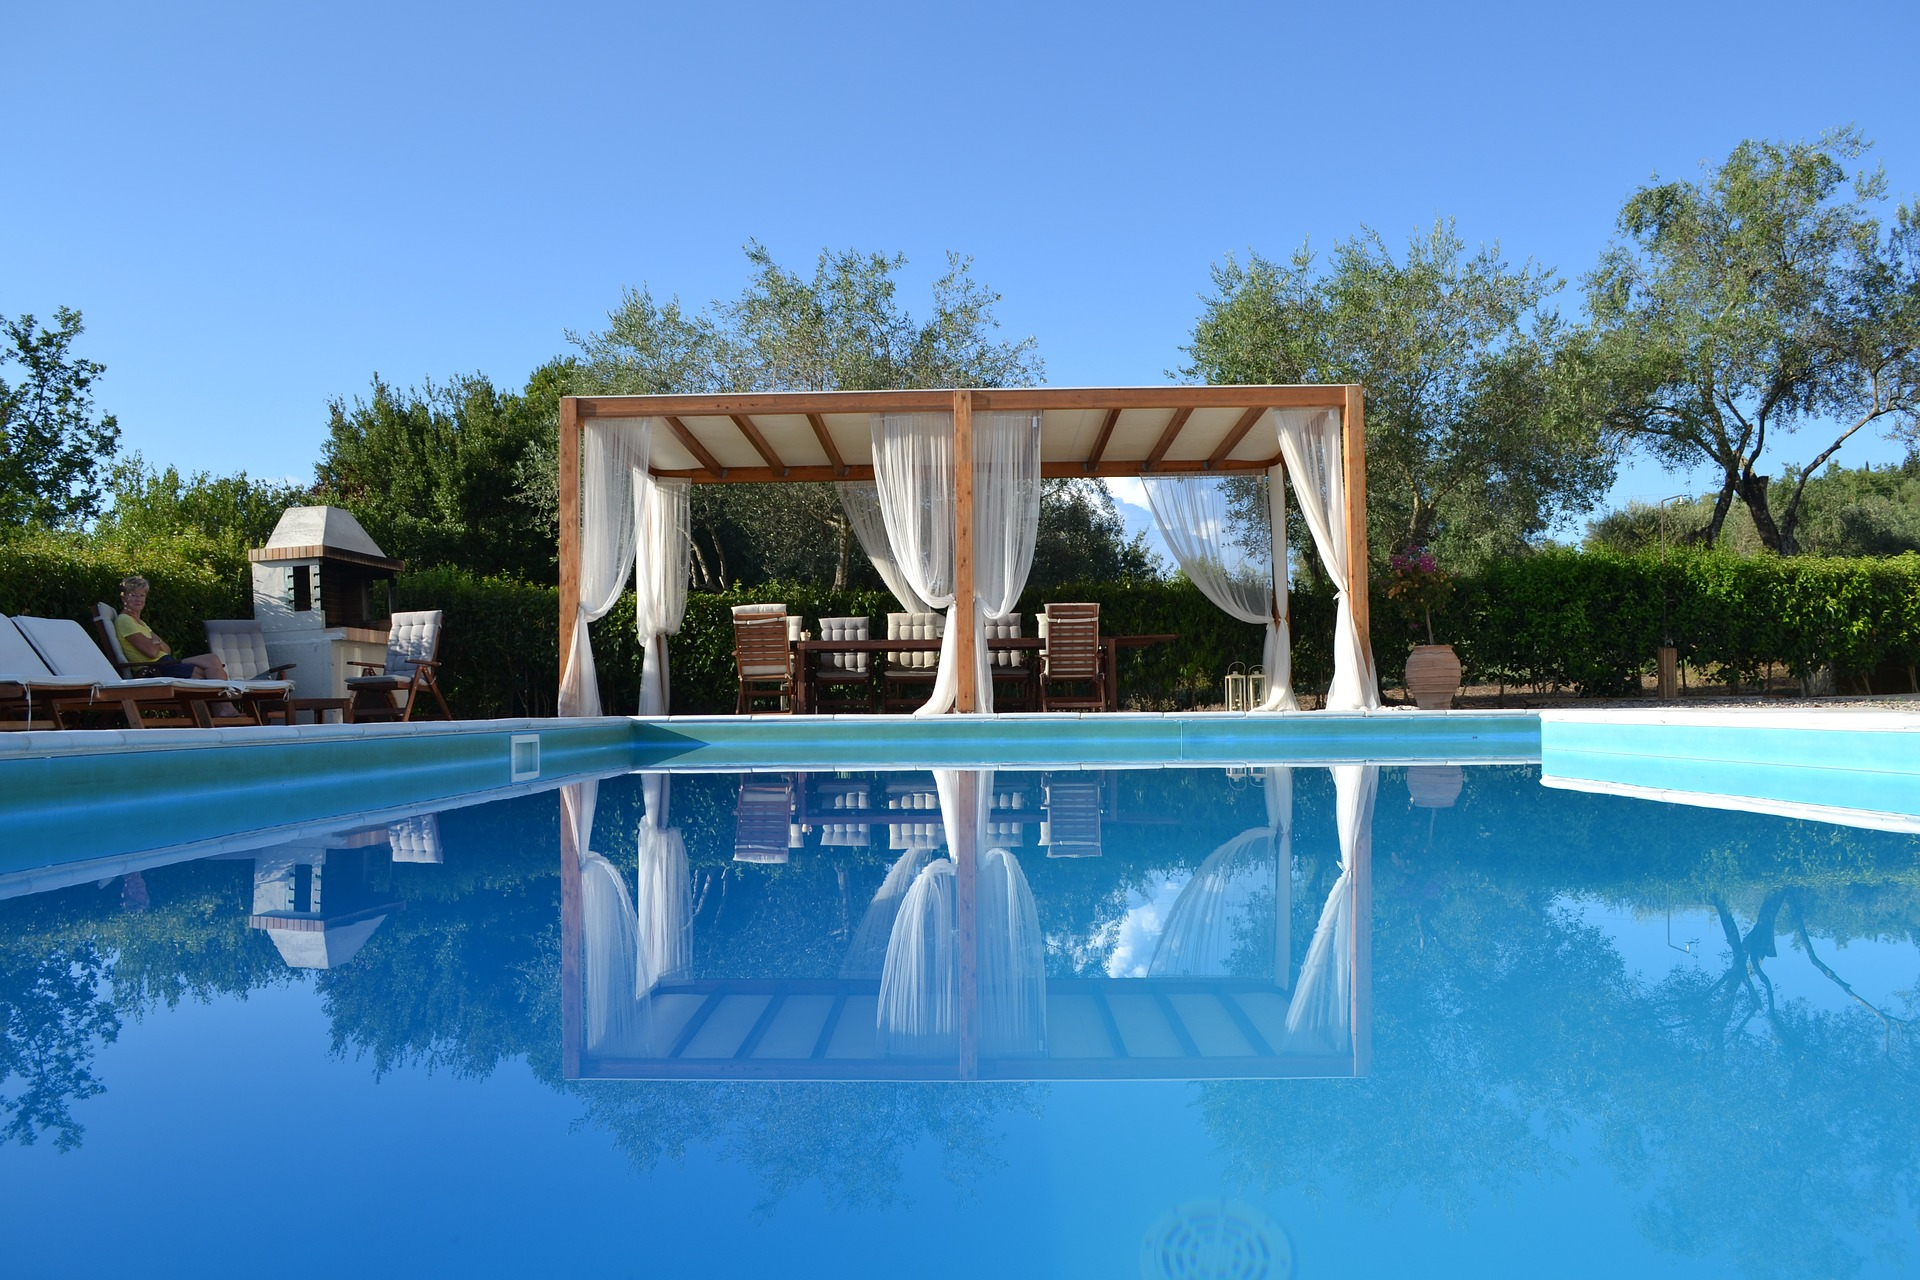 The Top 5 Reasons to Have Opulent Vacations Manage Your Luxury Vacation Home